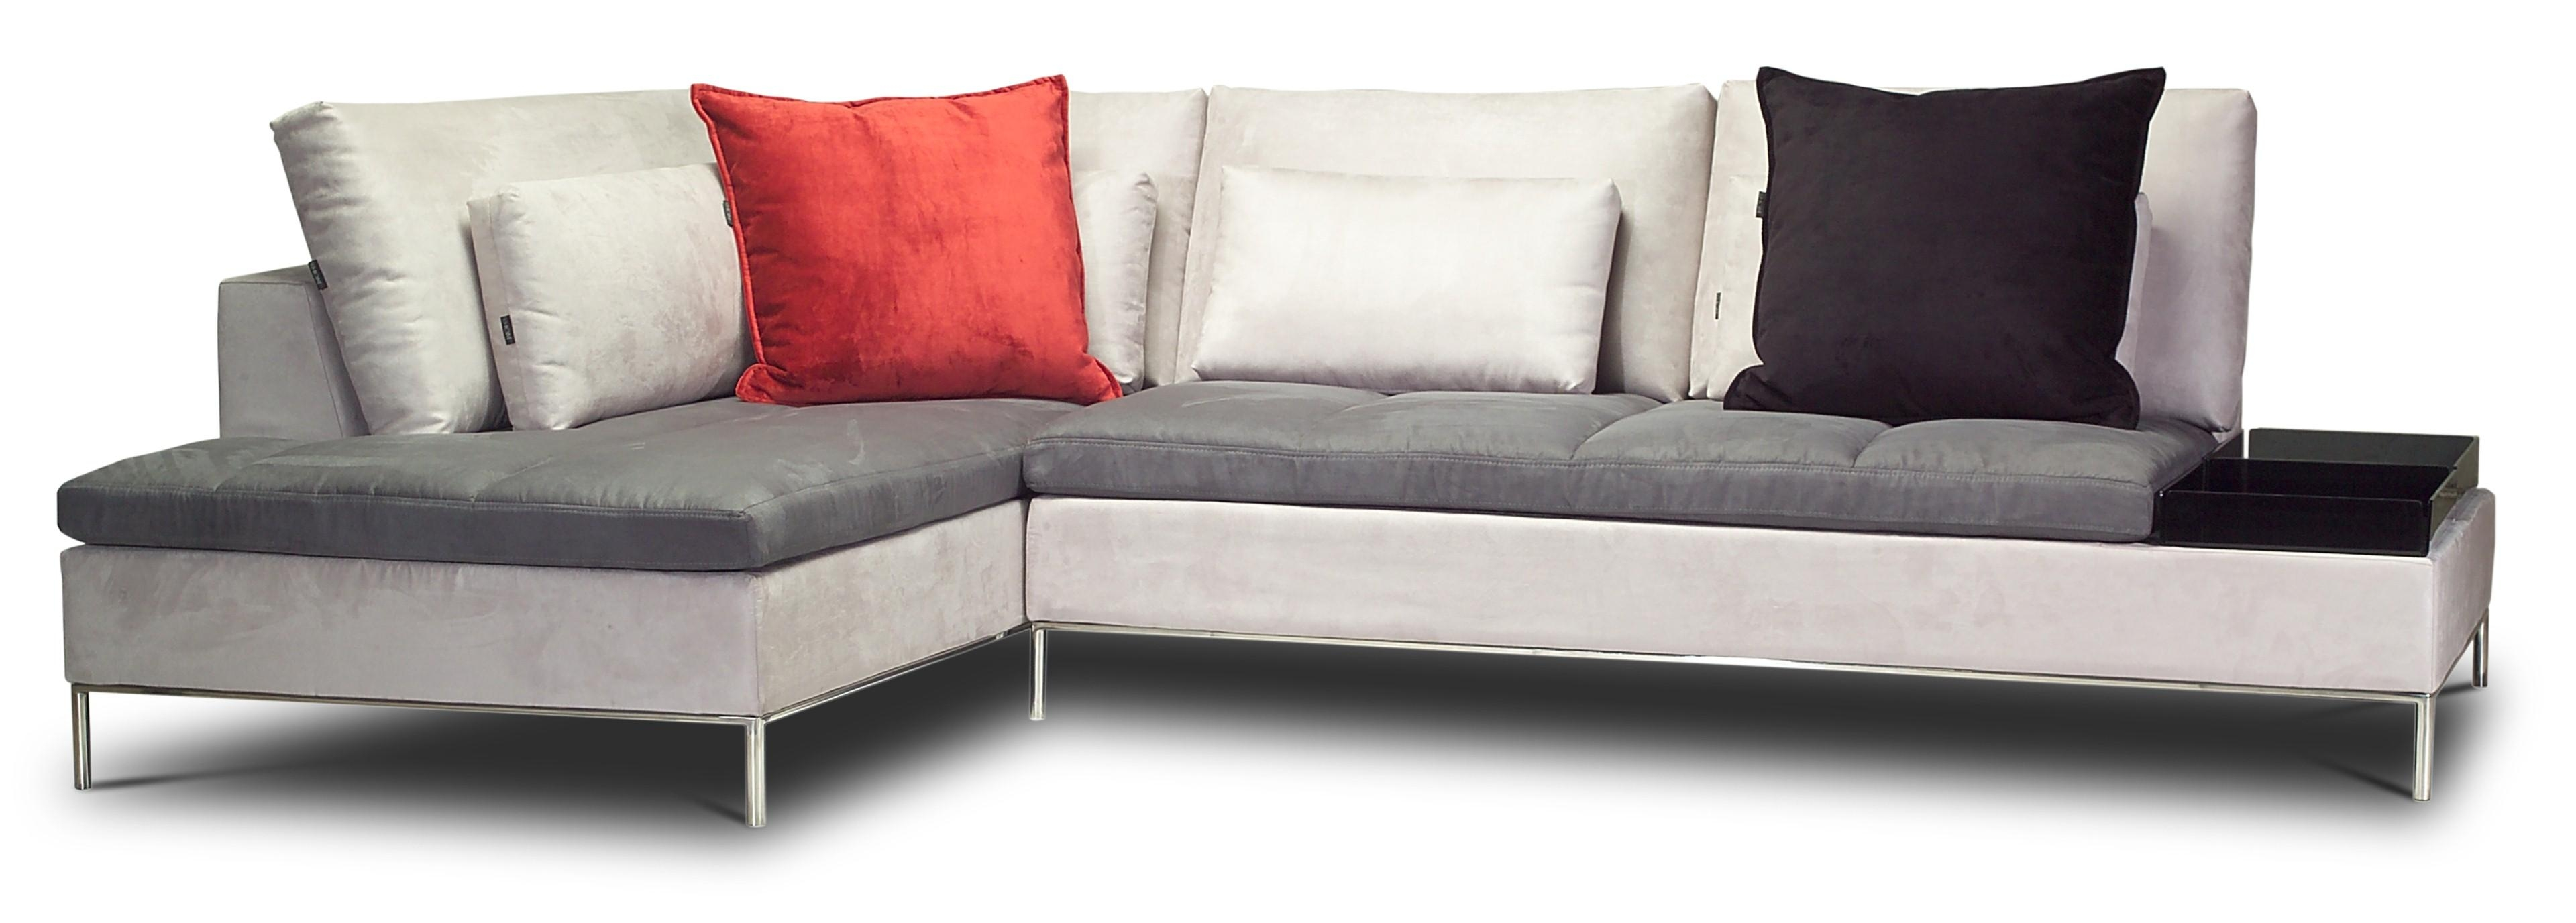 L Shaped Sectional (View 11 of 20)